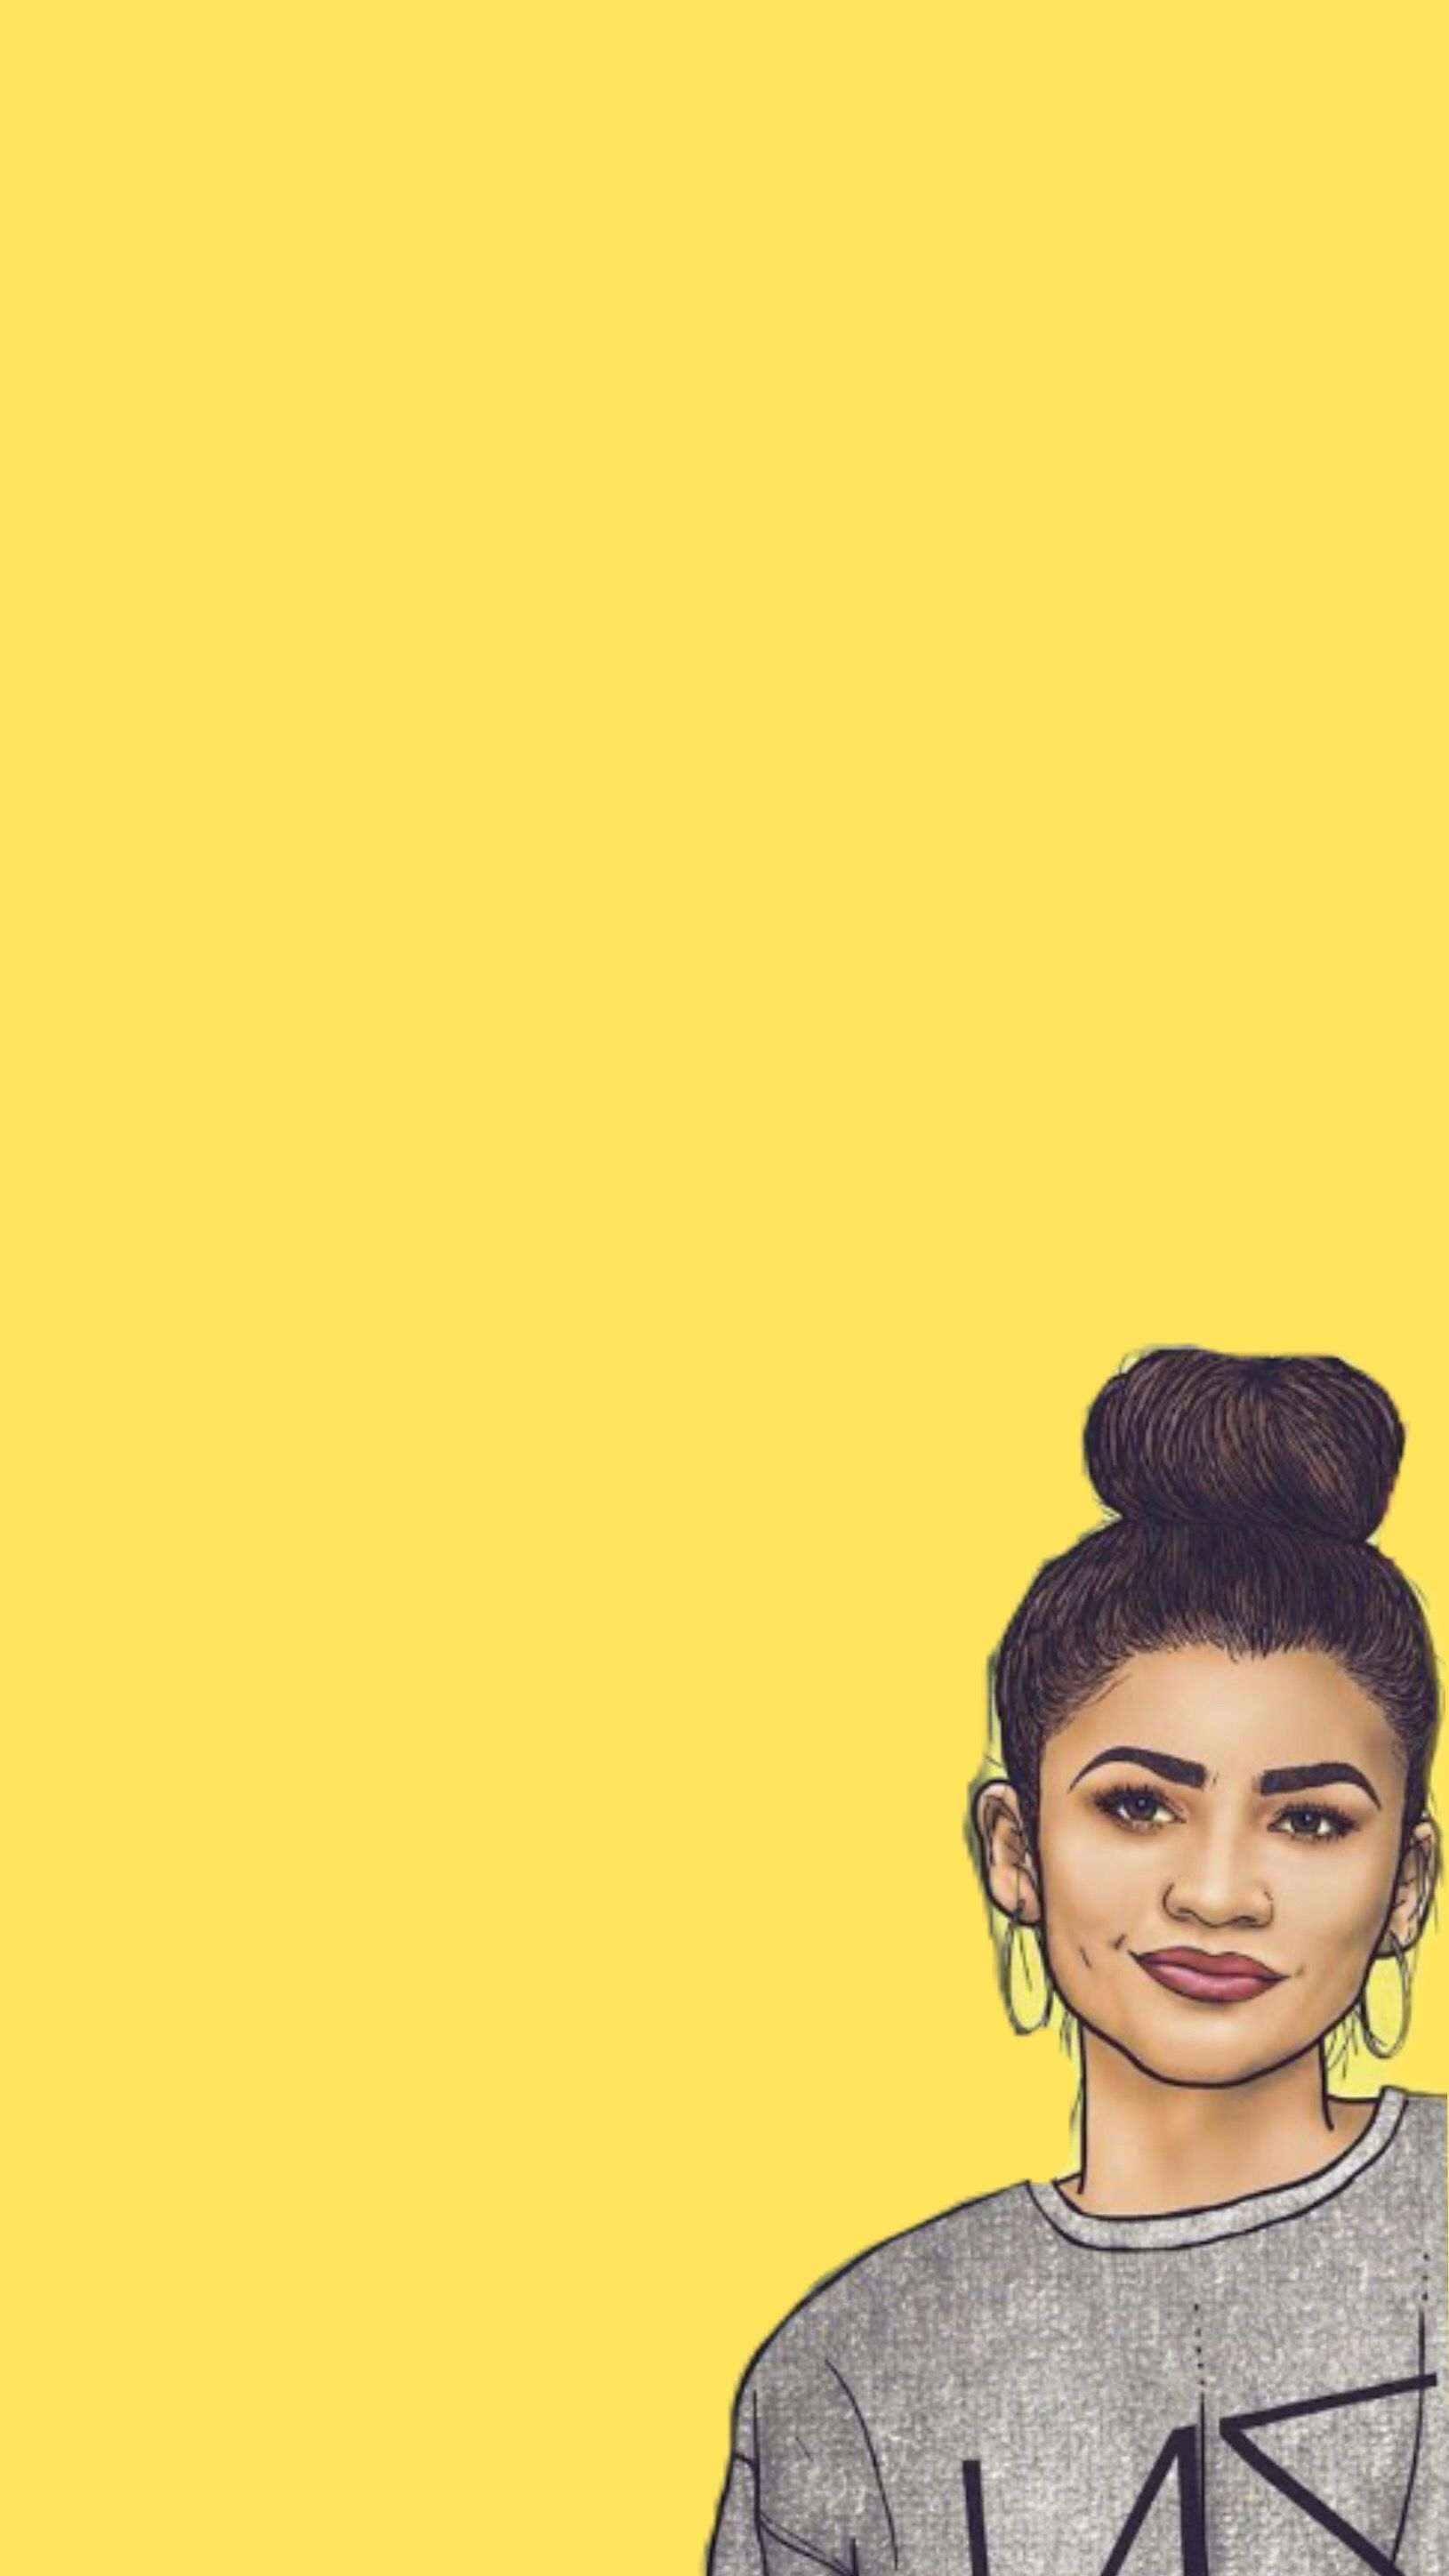 Wallpaper Background Zendaya Cute Queen Drawing Wallpaper Disney Phone Wallpaper Zendaya Coleman